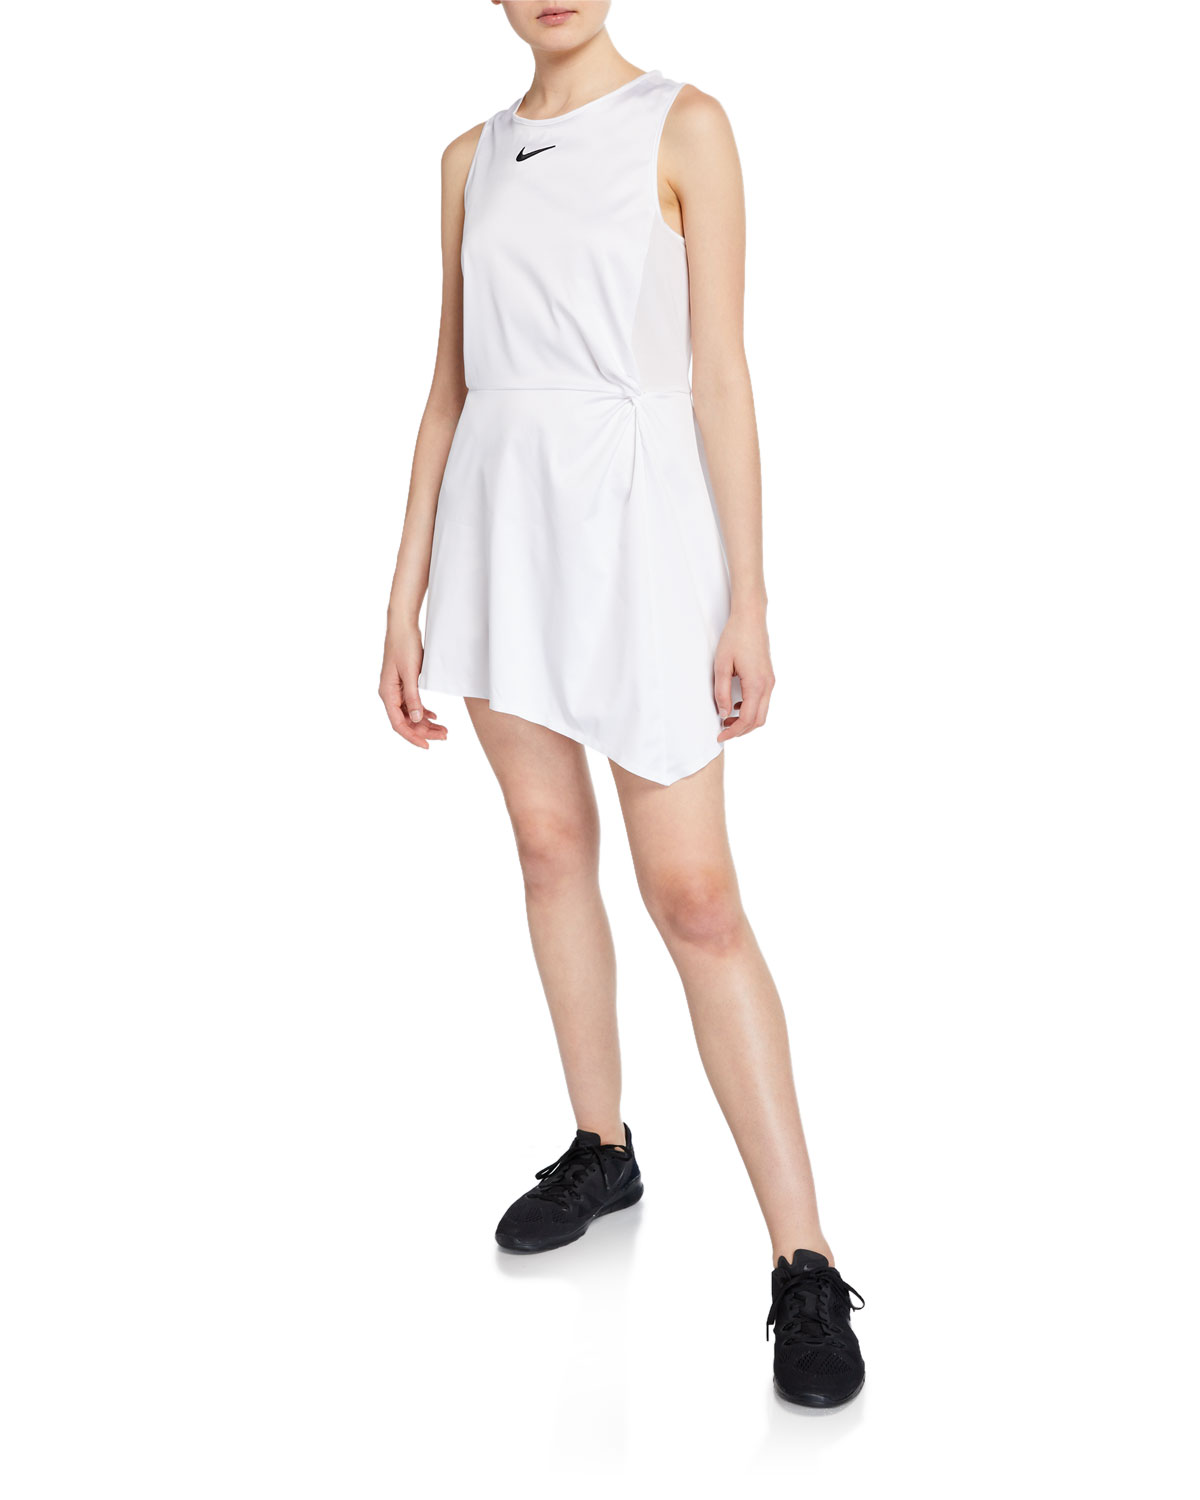 Nike x Maria Sharapova NikeCourt Sleeveless Cutout Tennis Dress